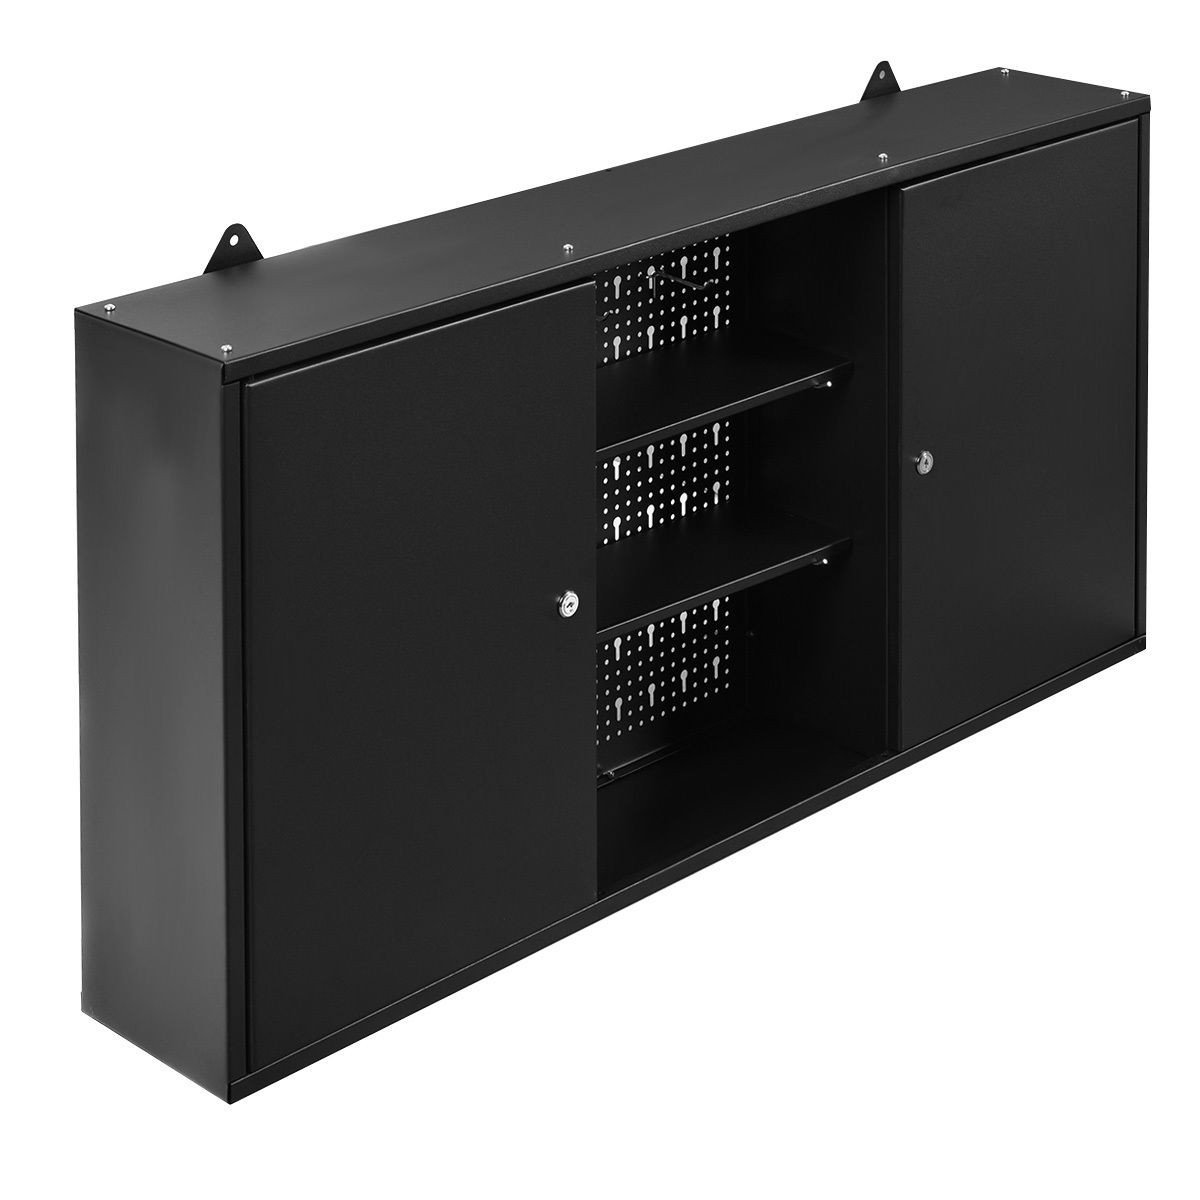 Wall Mount Hanging Tool Box Storage Cabinet Lock Home Office Garage Black - By Choice Products by By Choice Products